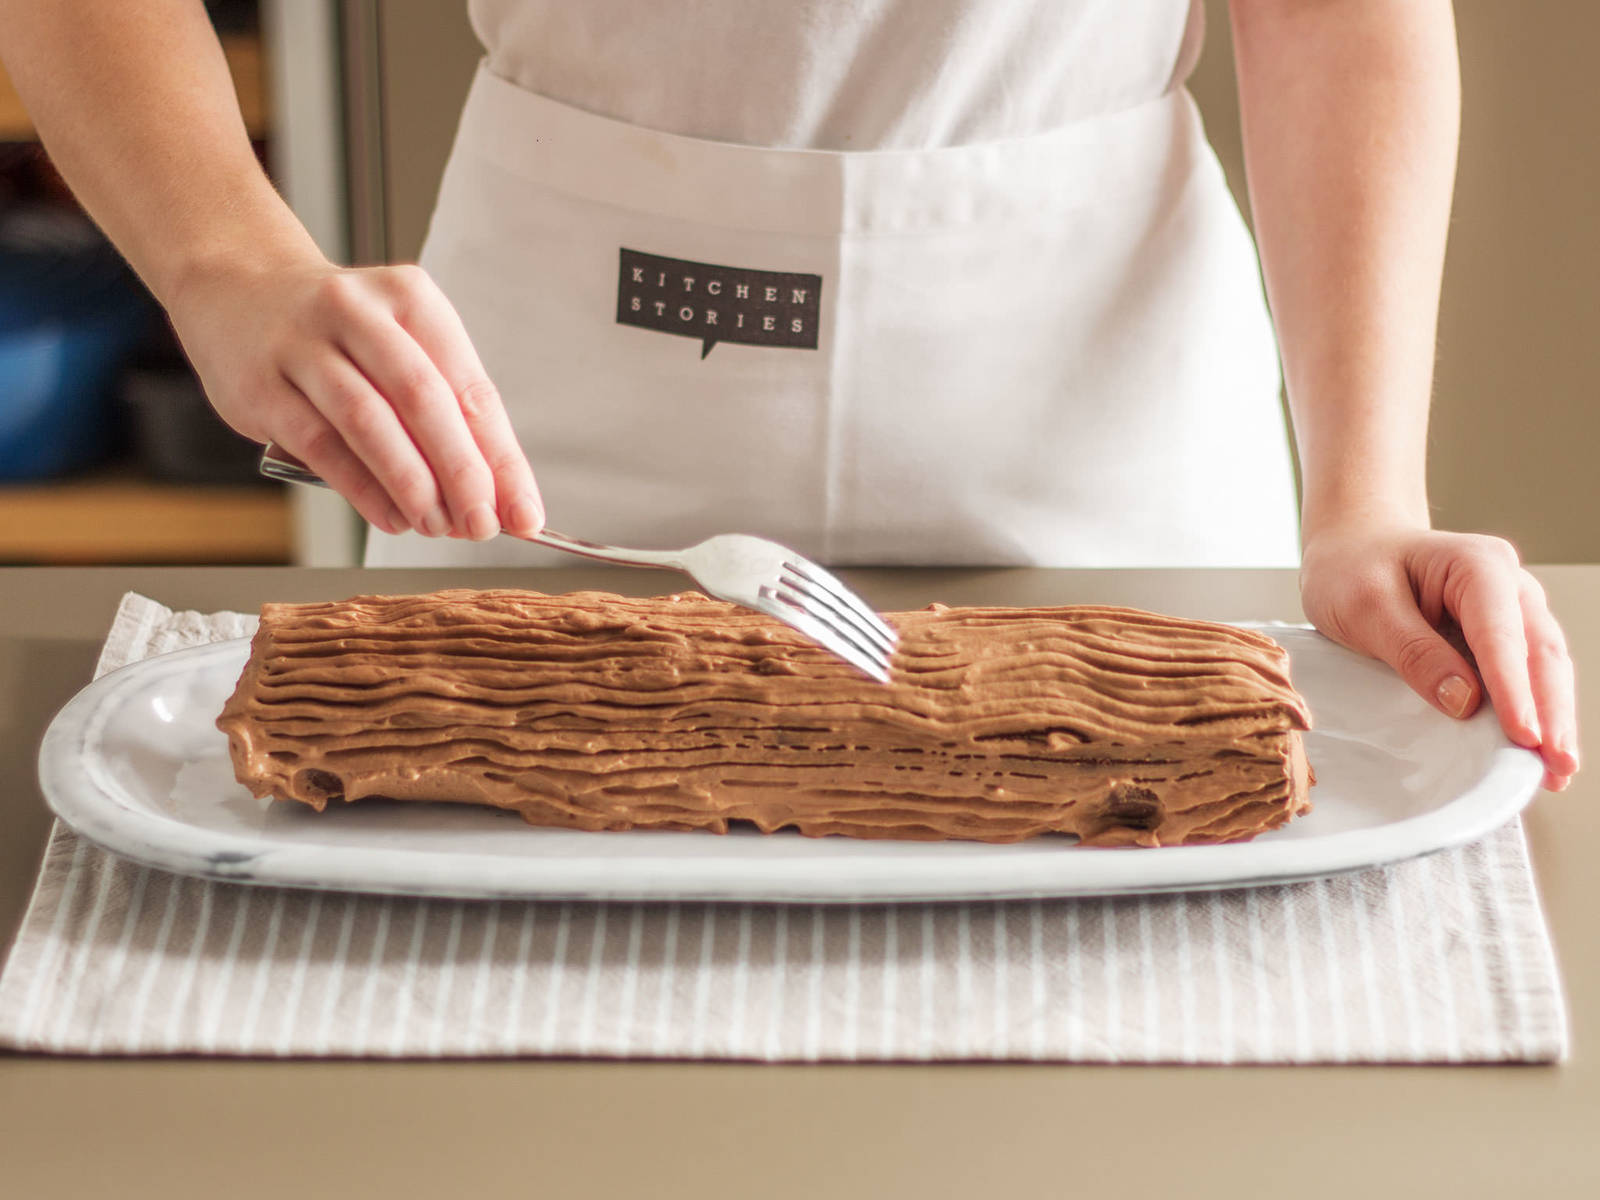 Distribute two thirds of the cream over the cake and roll it up. Place on a long serving plate and decorate with remaining cream. It is traditional to pull the tines of a fork over the cream to make it look like tree bark. Bon appétit!